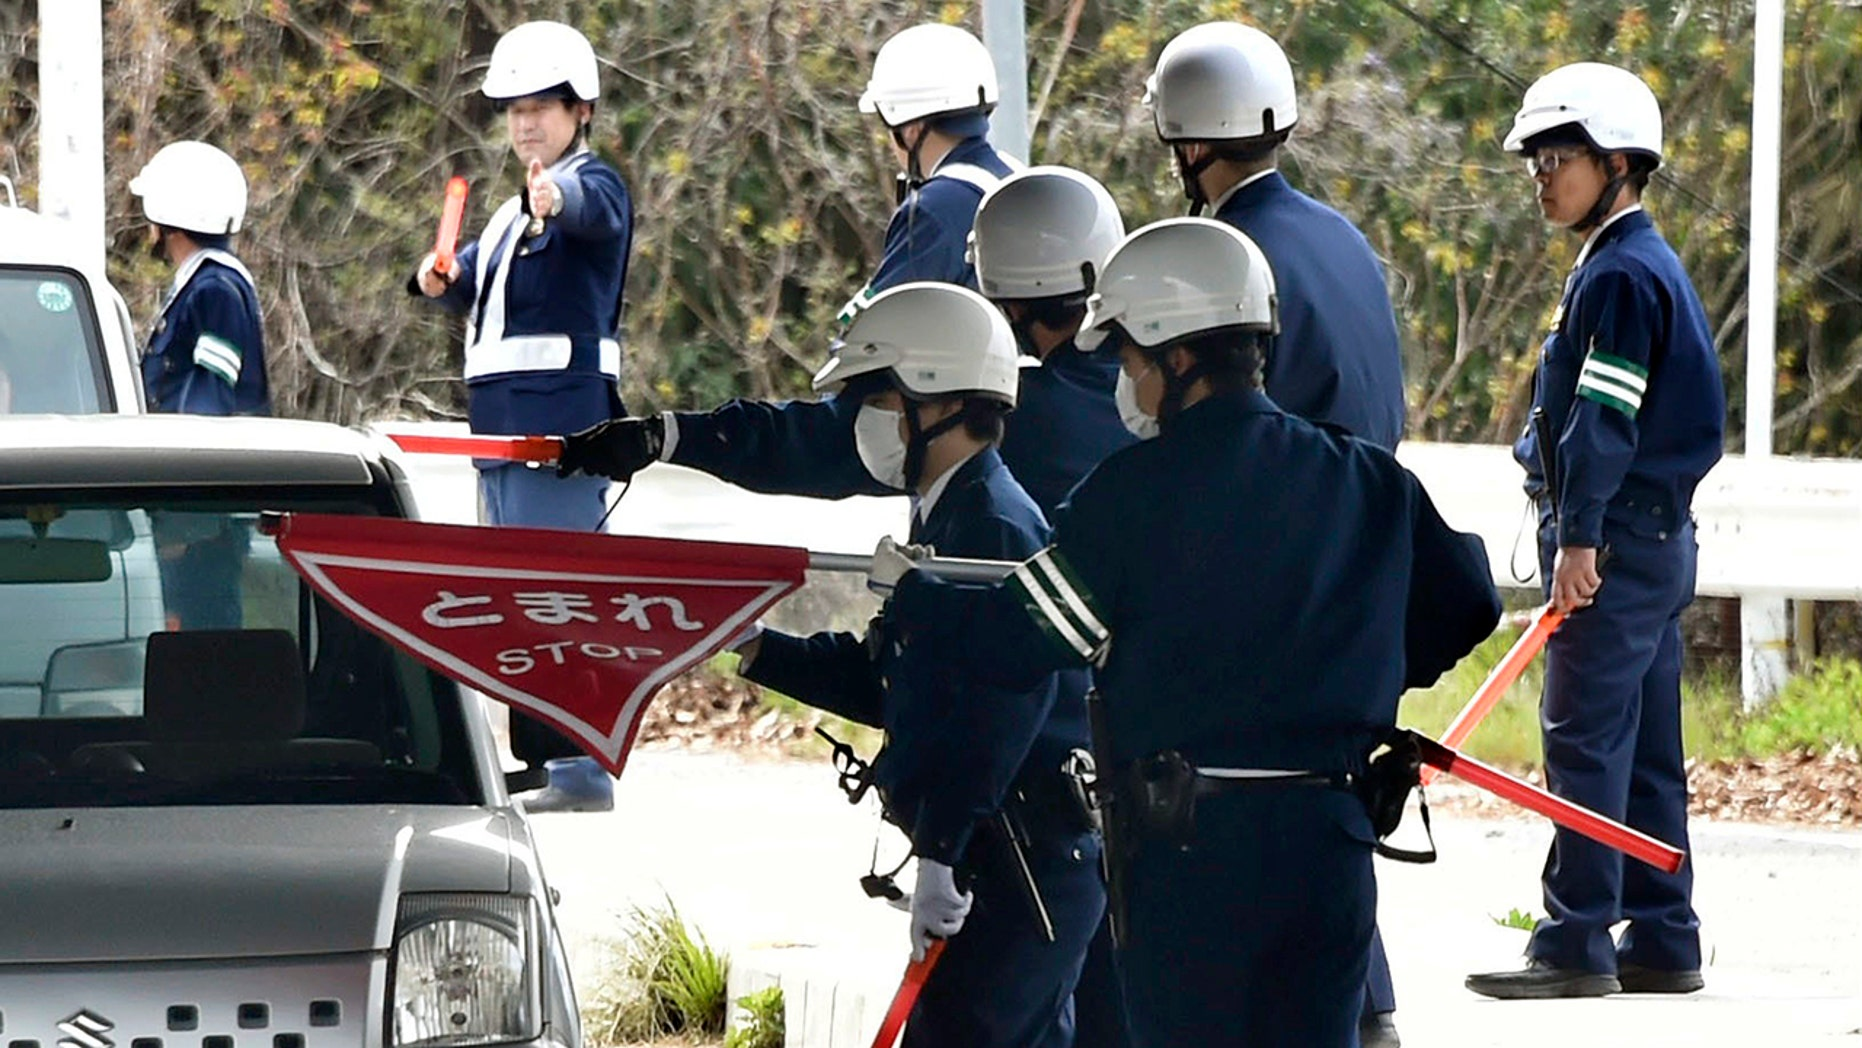 In this April 11, 2018, photo, police officers inspect cars at a checkpoint in Onomichi, Hiroshima prefecture.